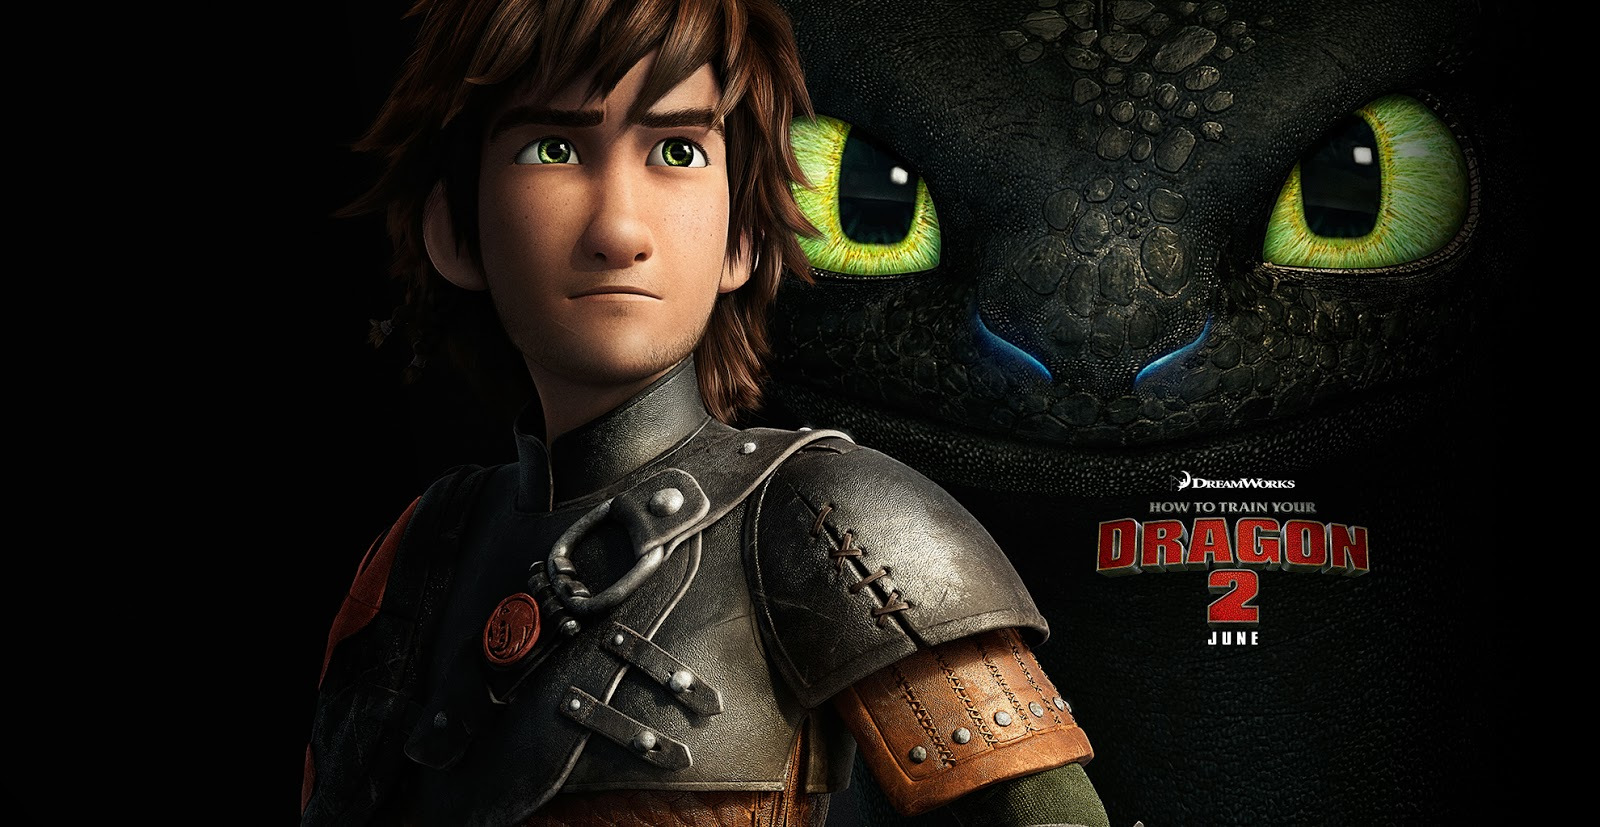 How To Train Your Dragon 2 Hiccup Age Movie-Themed Halloween...